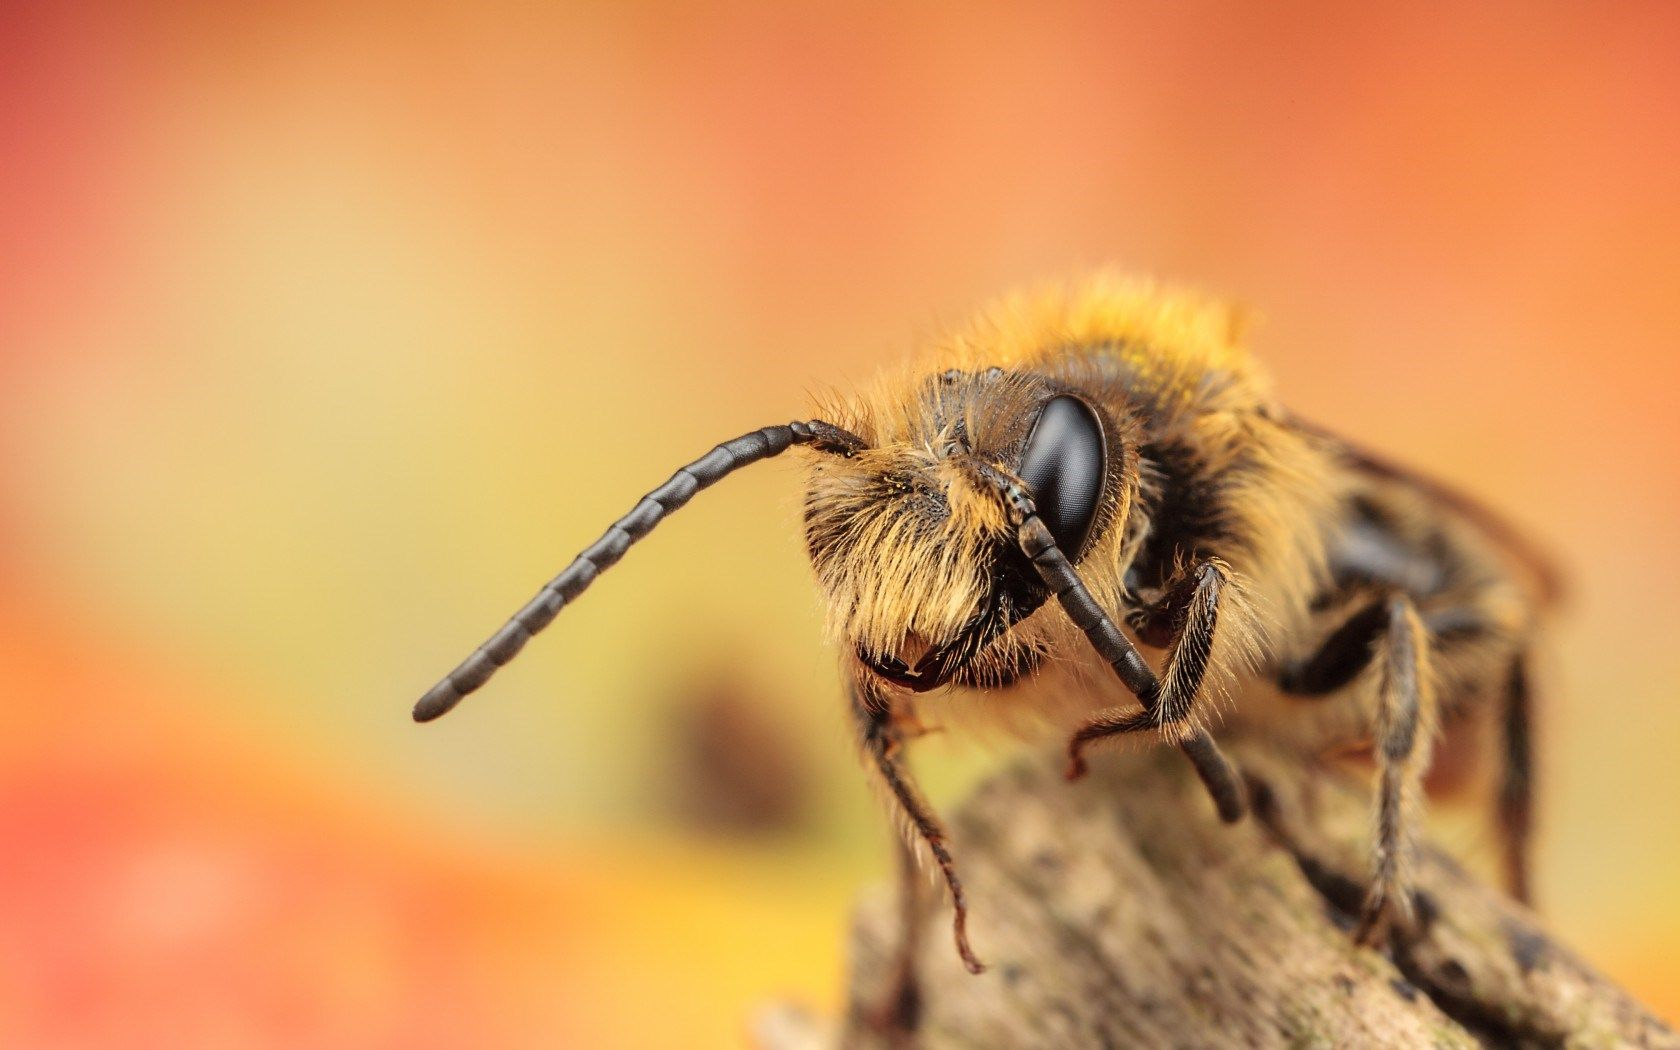 show me a picture of a bee